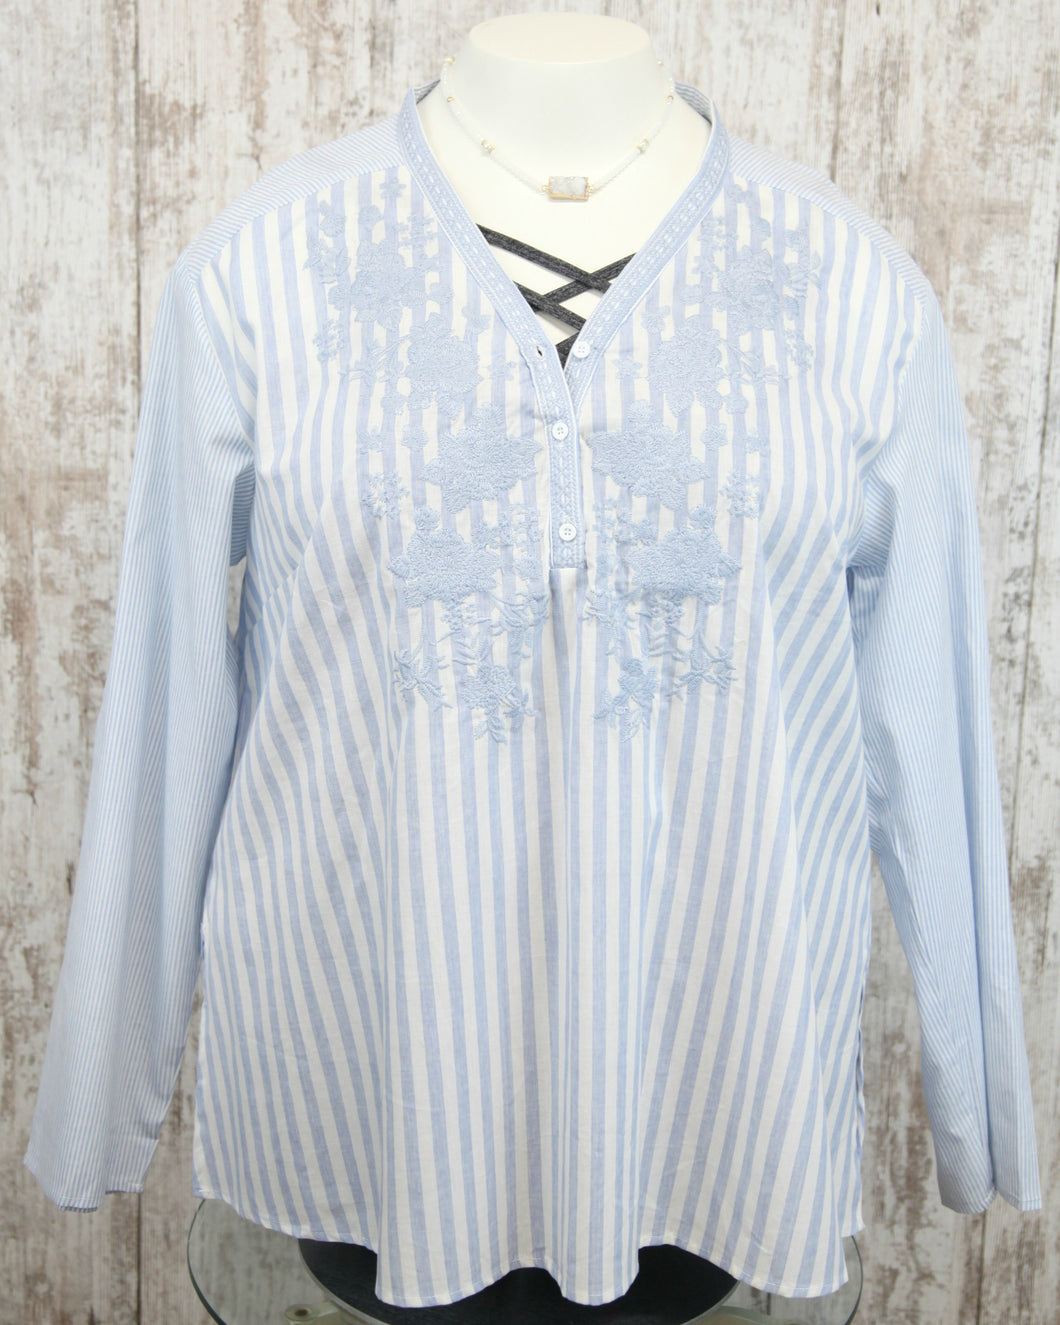 PLUS Roll Up Long Slv Striped Embroidered Top w Vneck w Buttons P14375